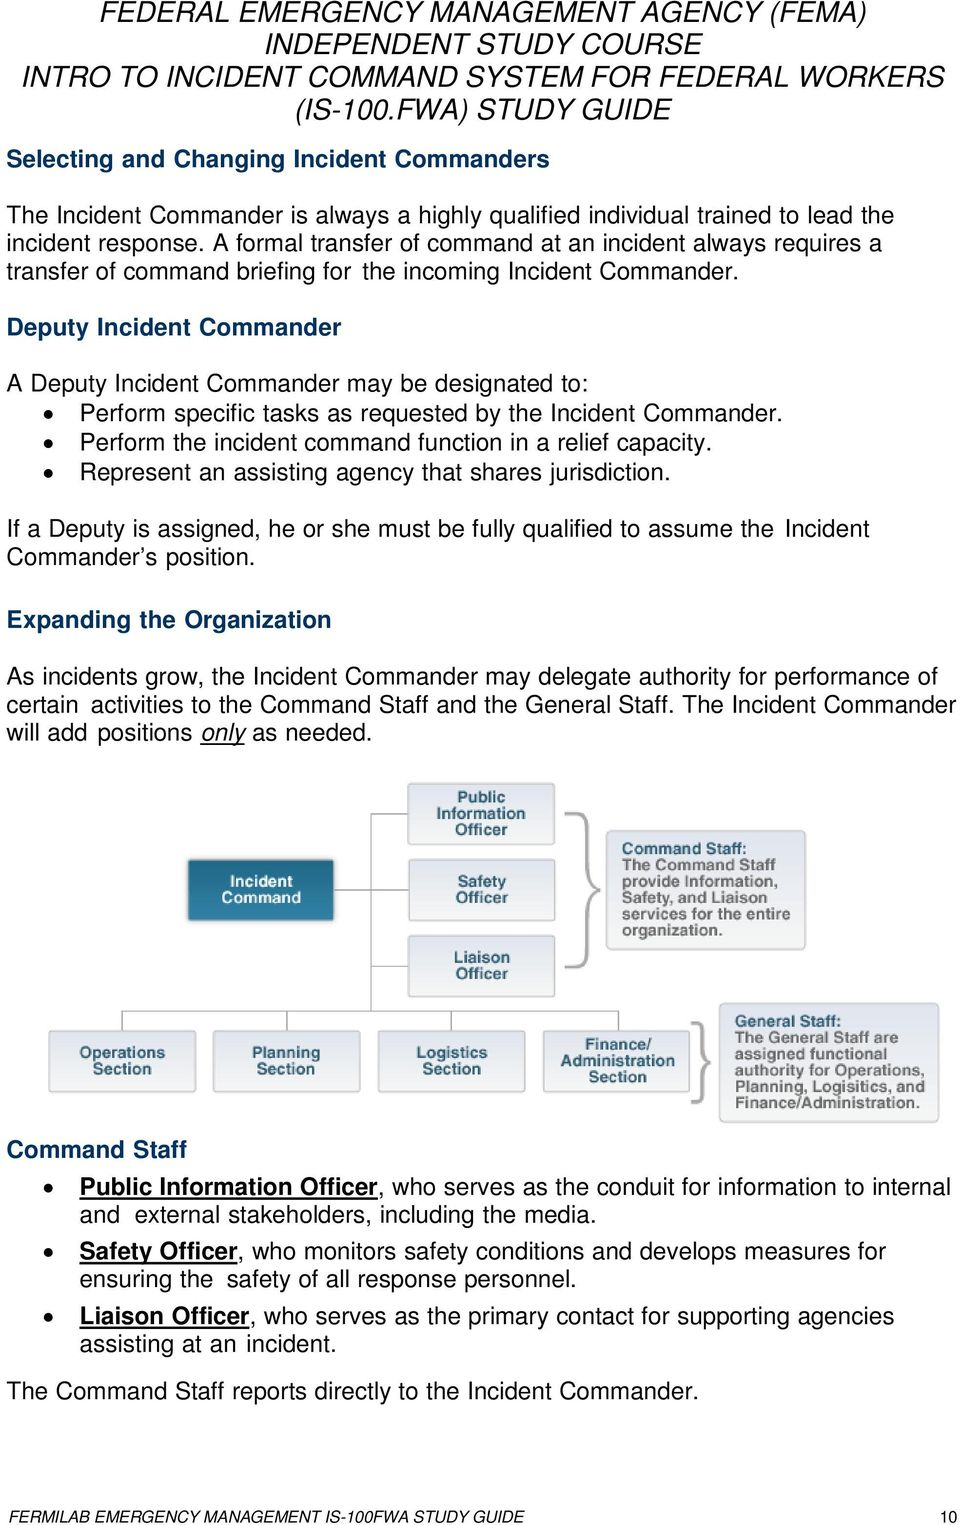 Deputy Incident Commander A Deputy Incident Commander may be designated to: Perform specific tasks as requested by the Incident Commander. Perform the incident command function in a relief capacity.